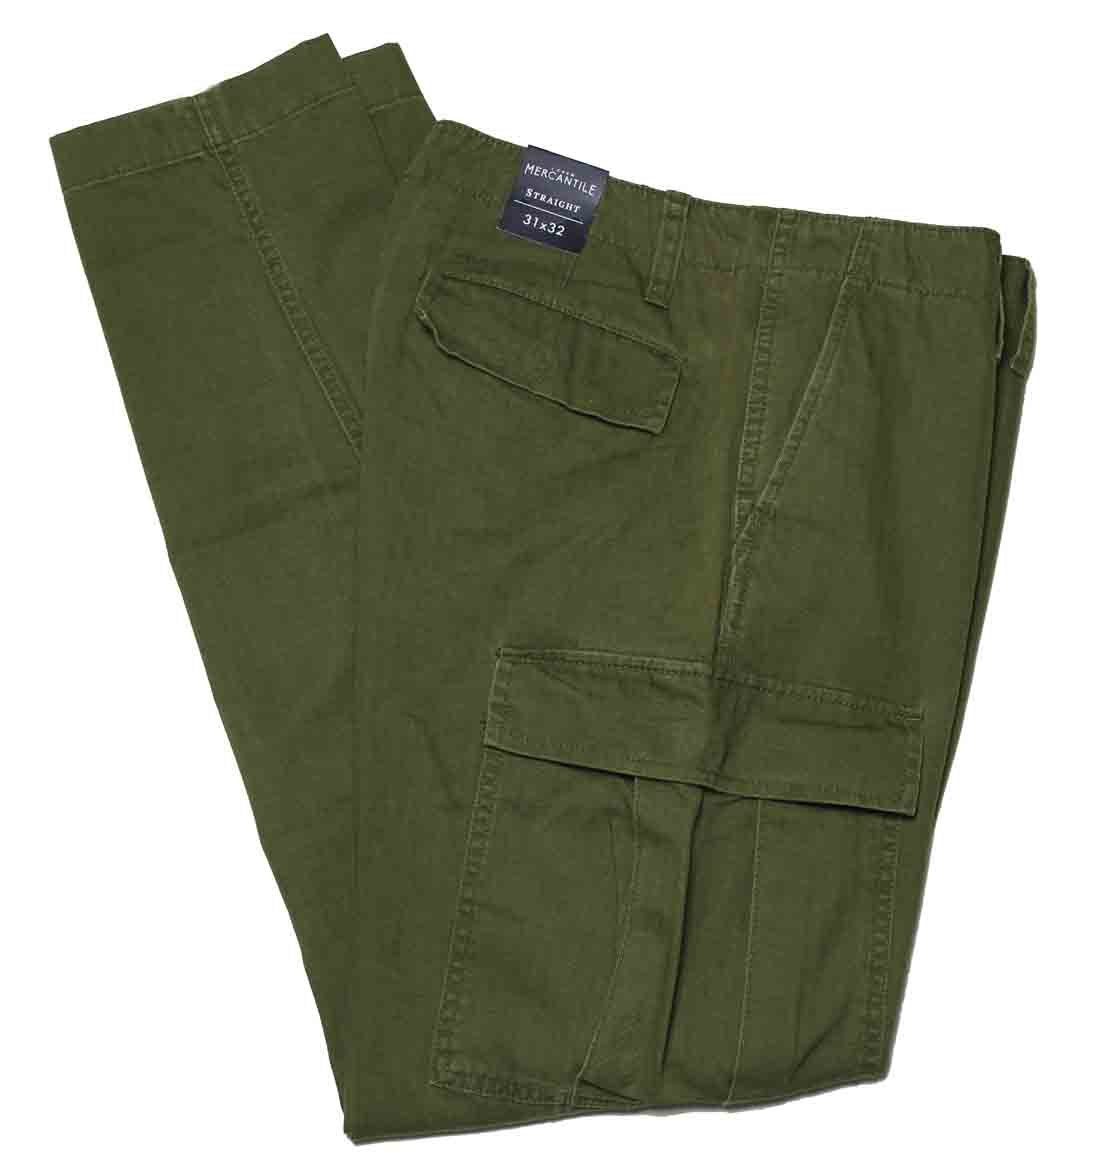 Men's J. Crew Cargo Pants Mercantile Straight Tapered Olive Green 31X32